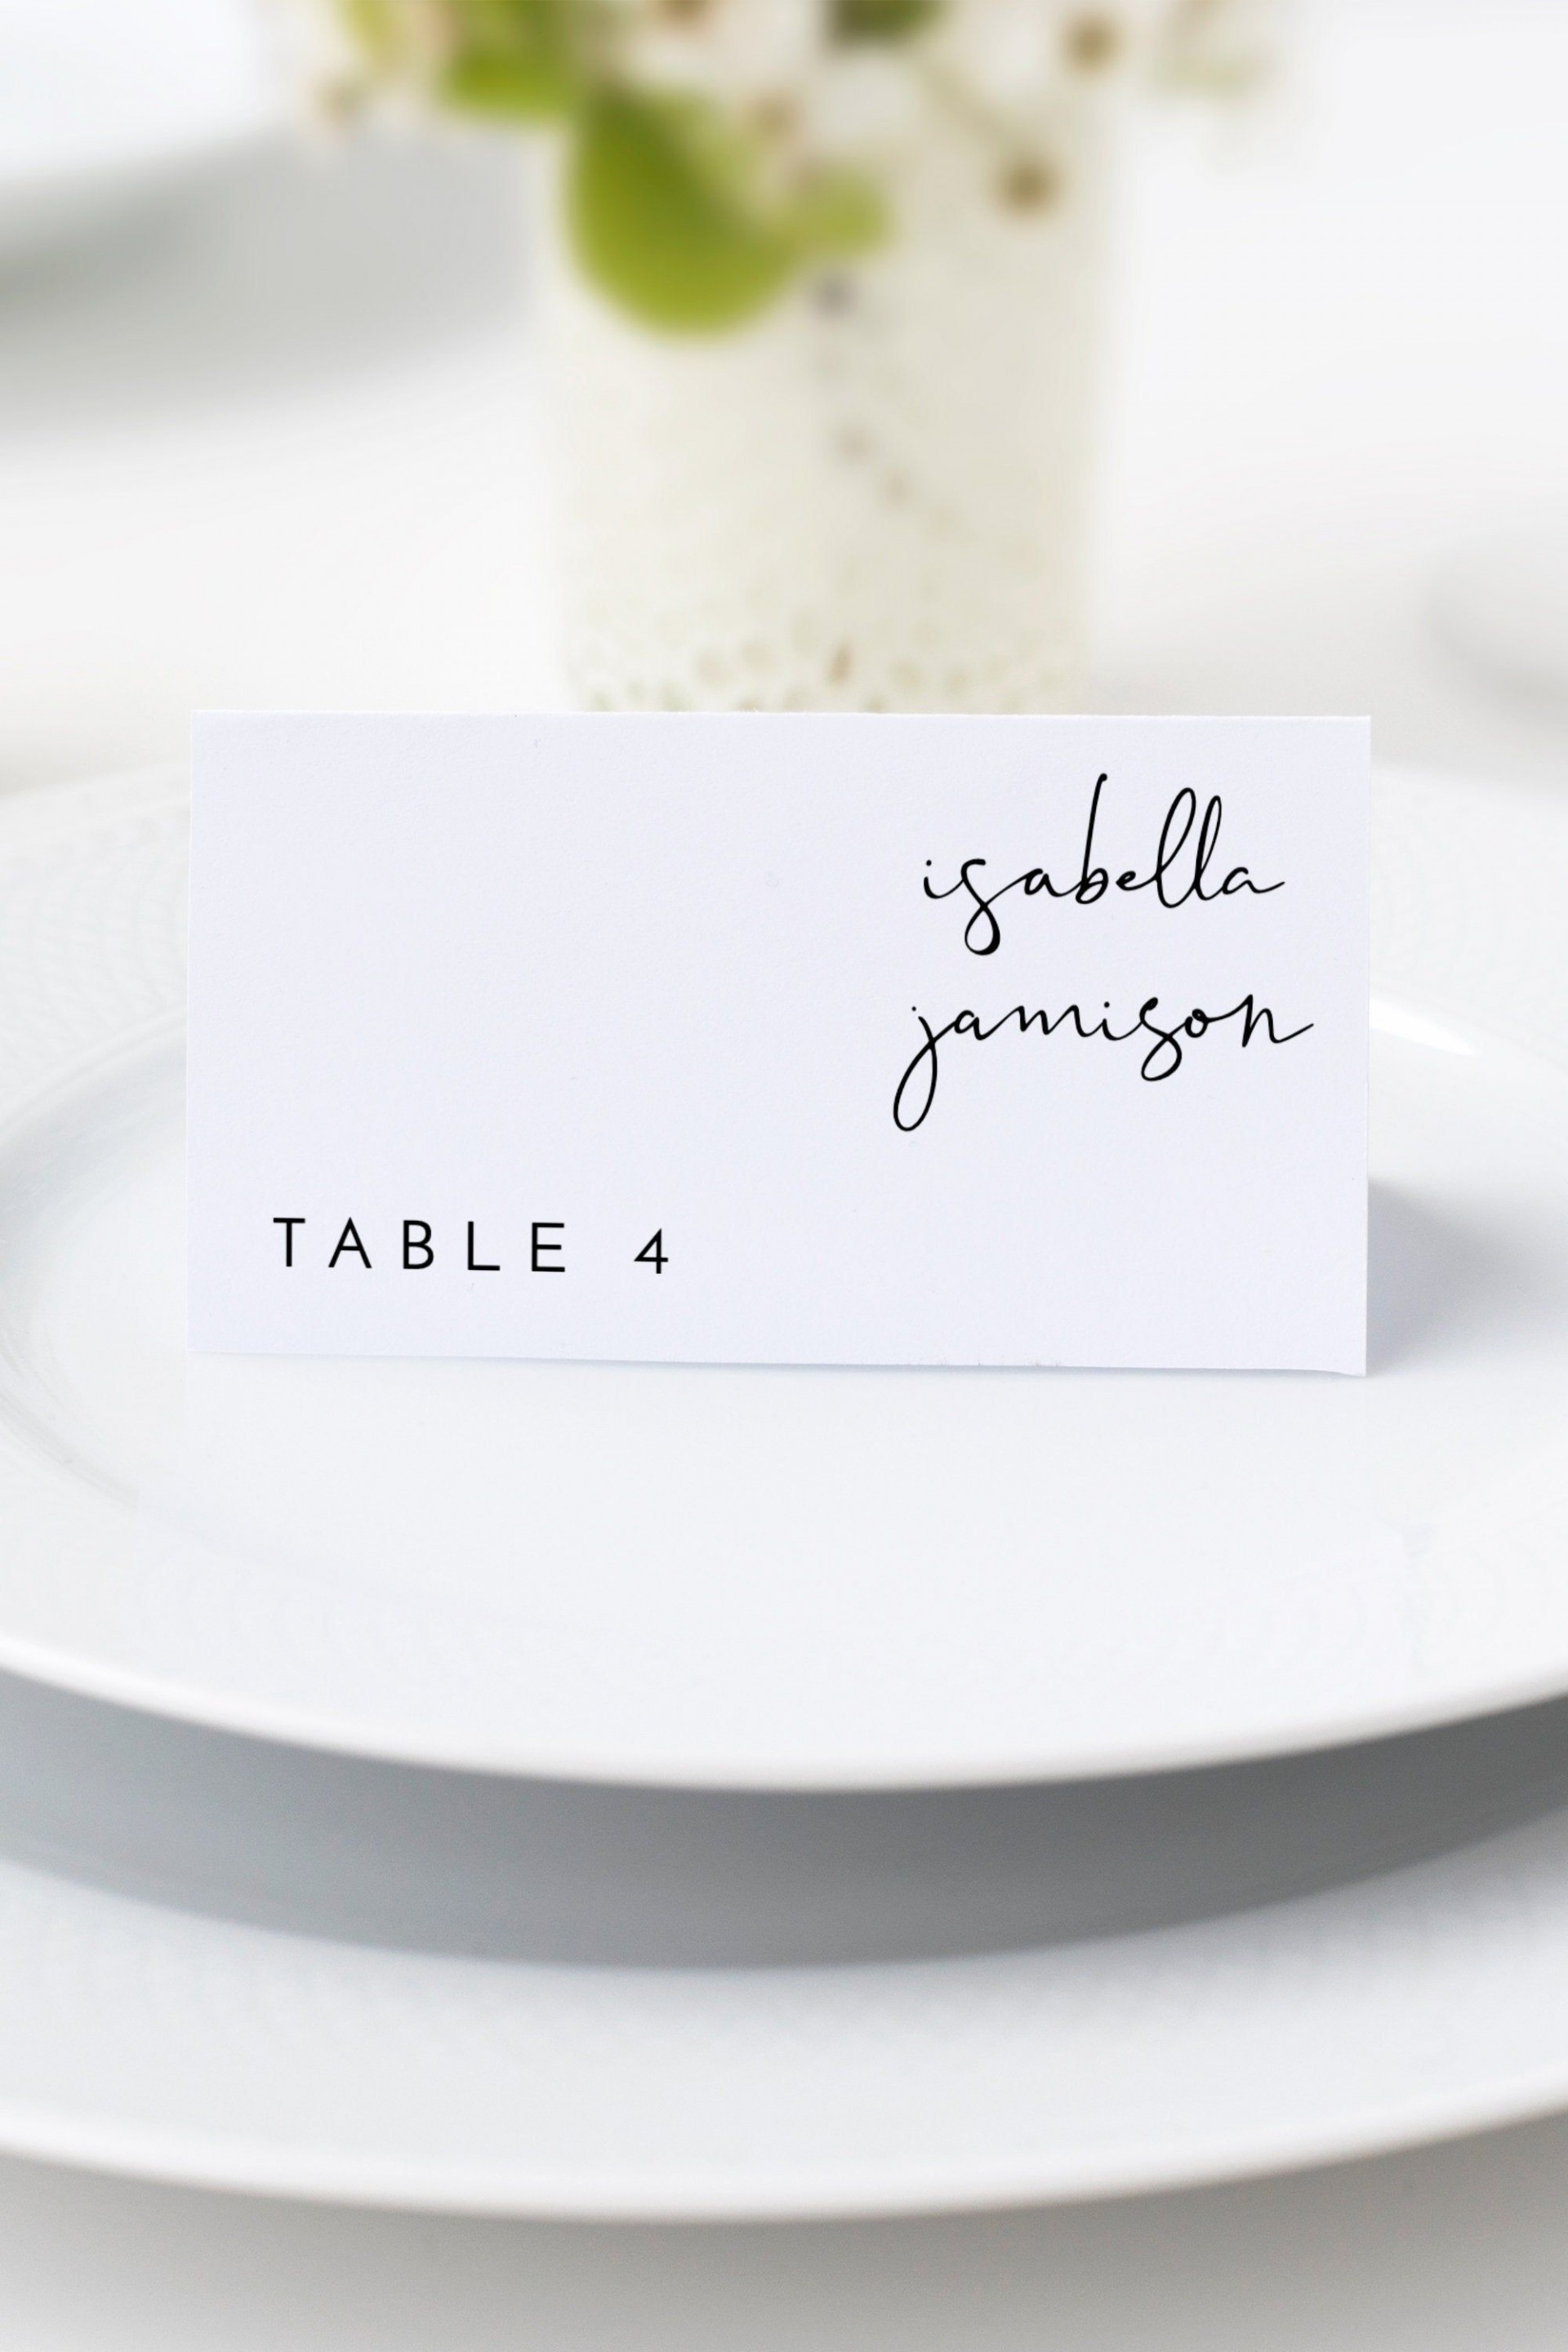 002 Fascinating Wedding Name Card Template Picture  Free Download Design Sticker Format1920